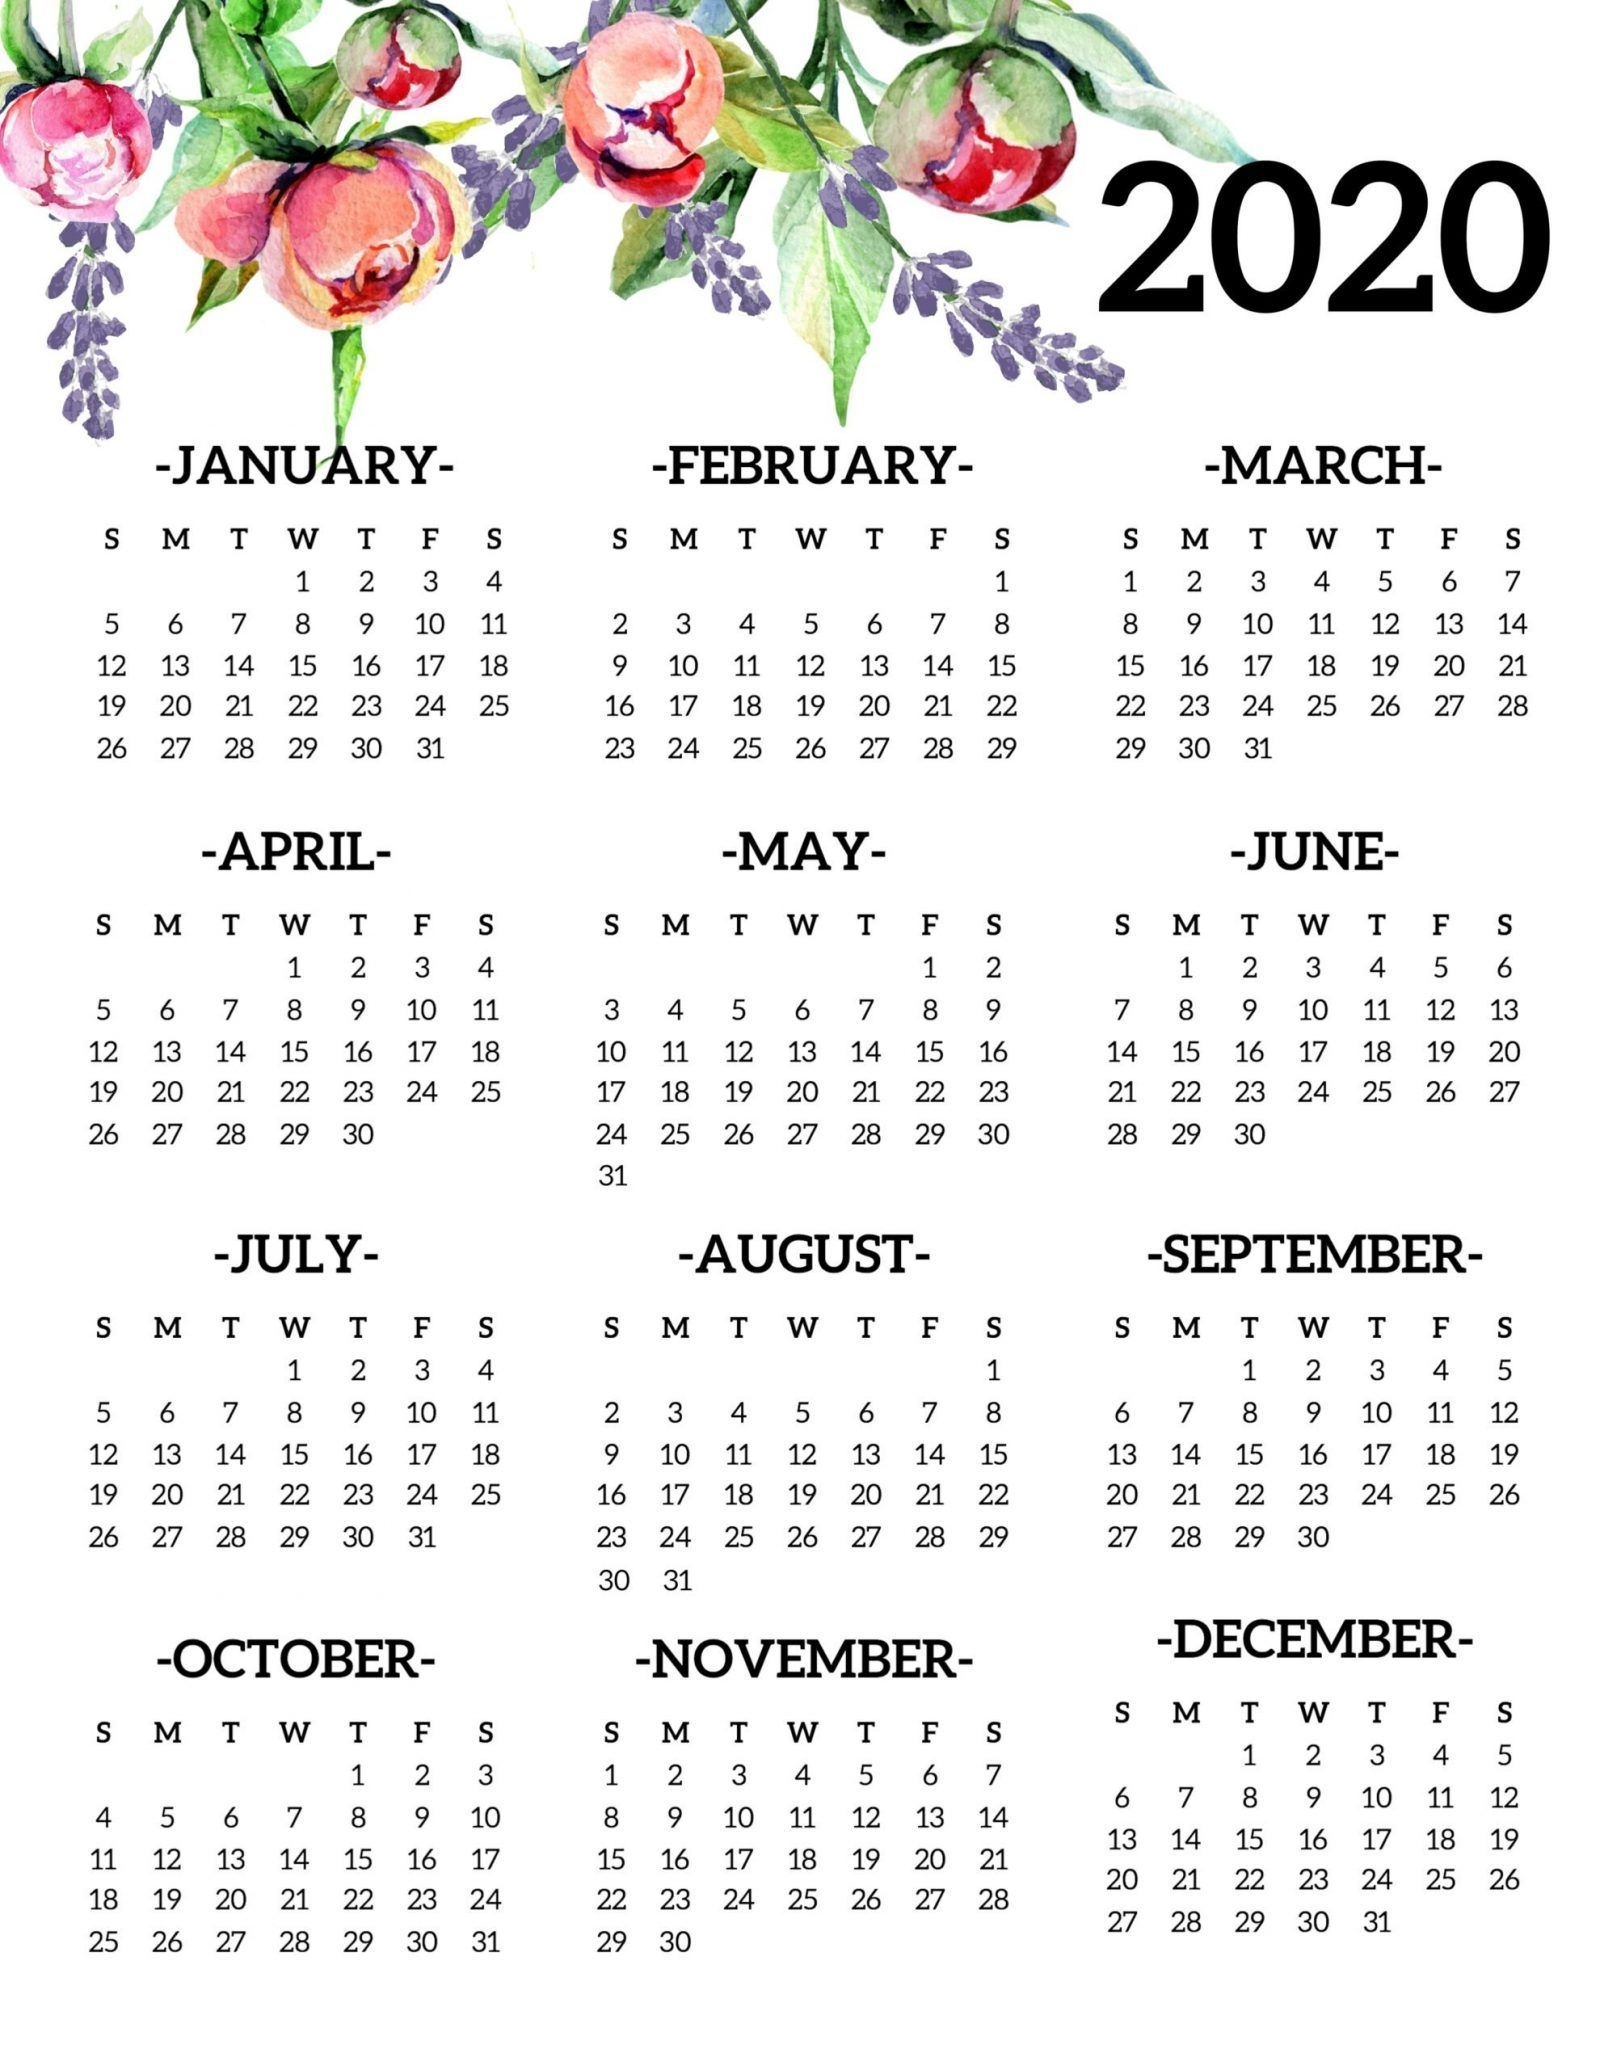 20 Free Printable Calendars For 2020 - Yesmissy In 2020 with regard to At A Glance 2020 Calendar Year Free Printable